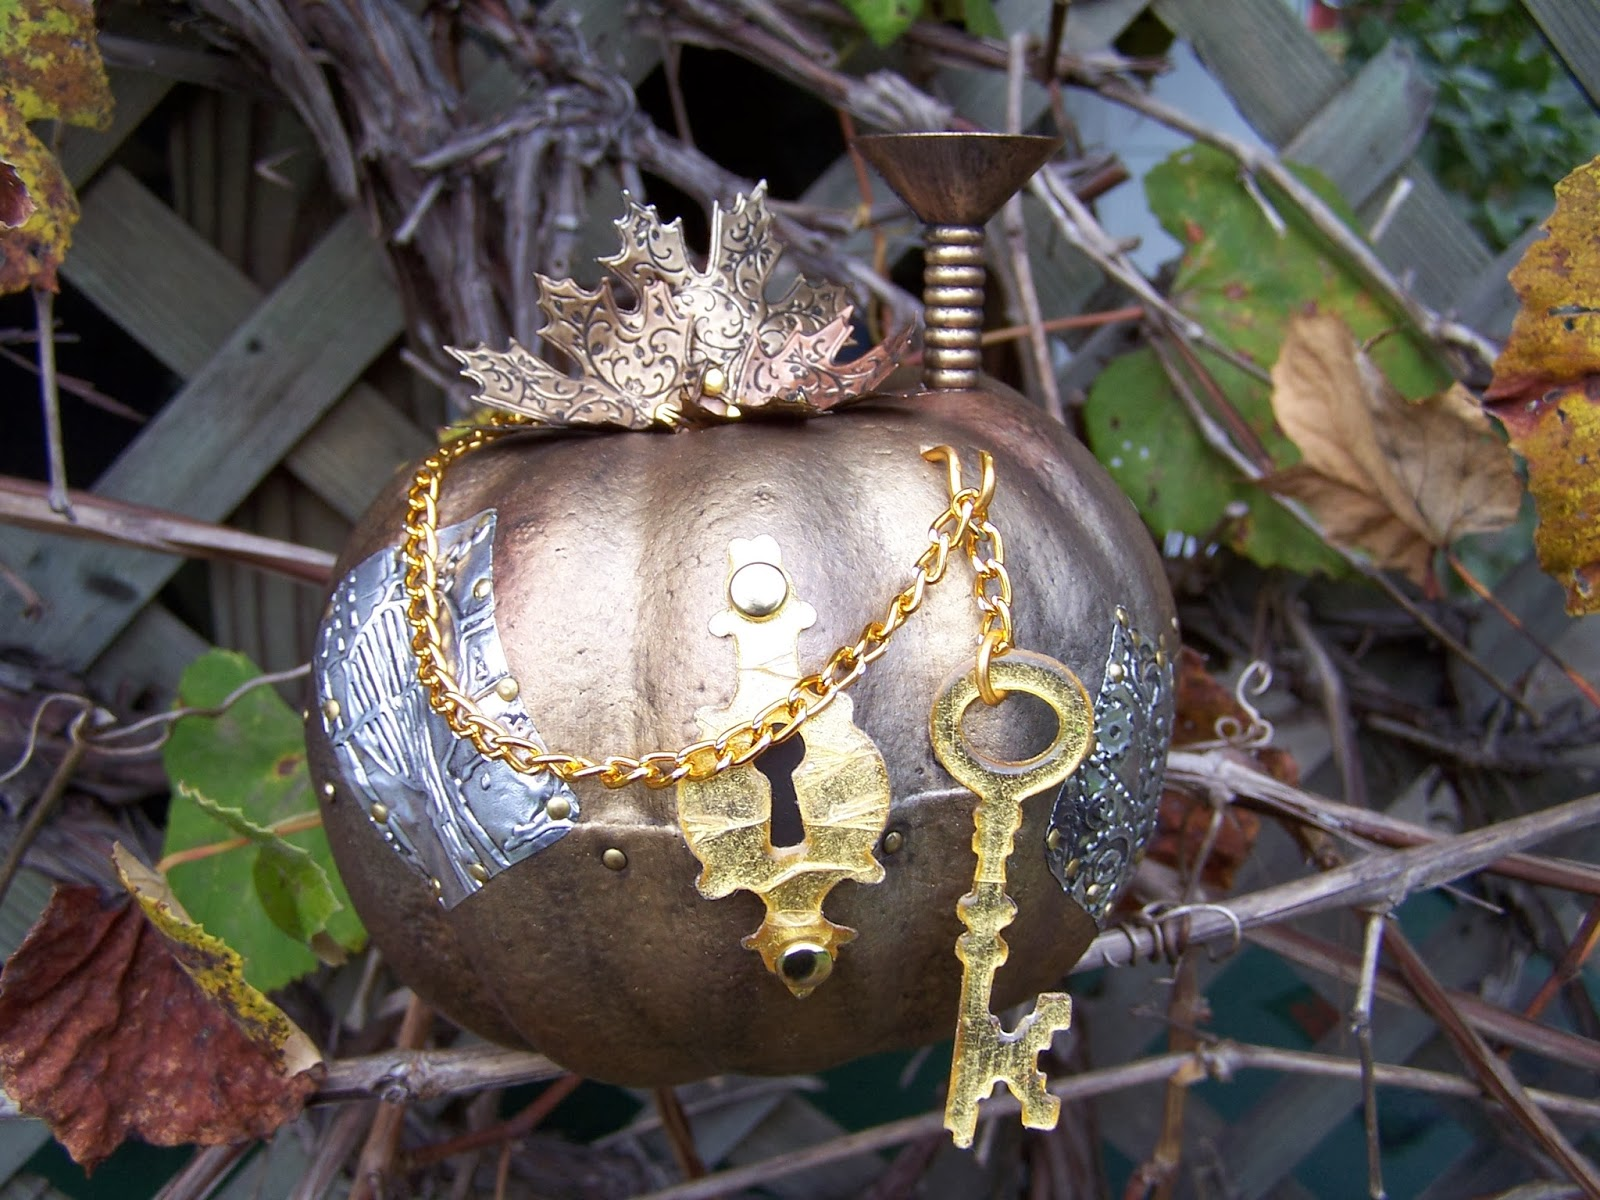 Ring In The Steampunk Decor To Pimp Up Your Home: The Craft Store Reject Strikes Again.: Adventures In